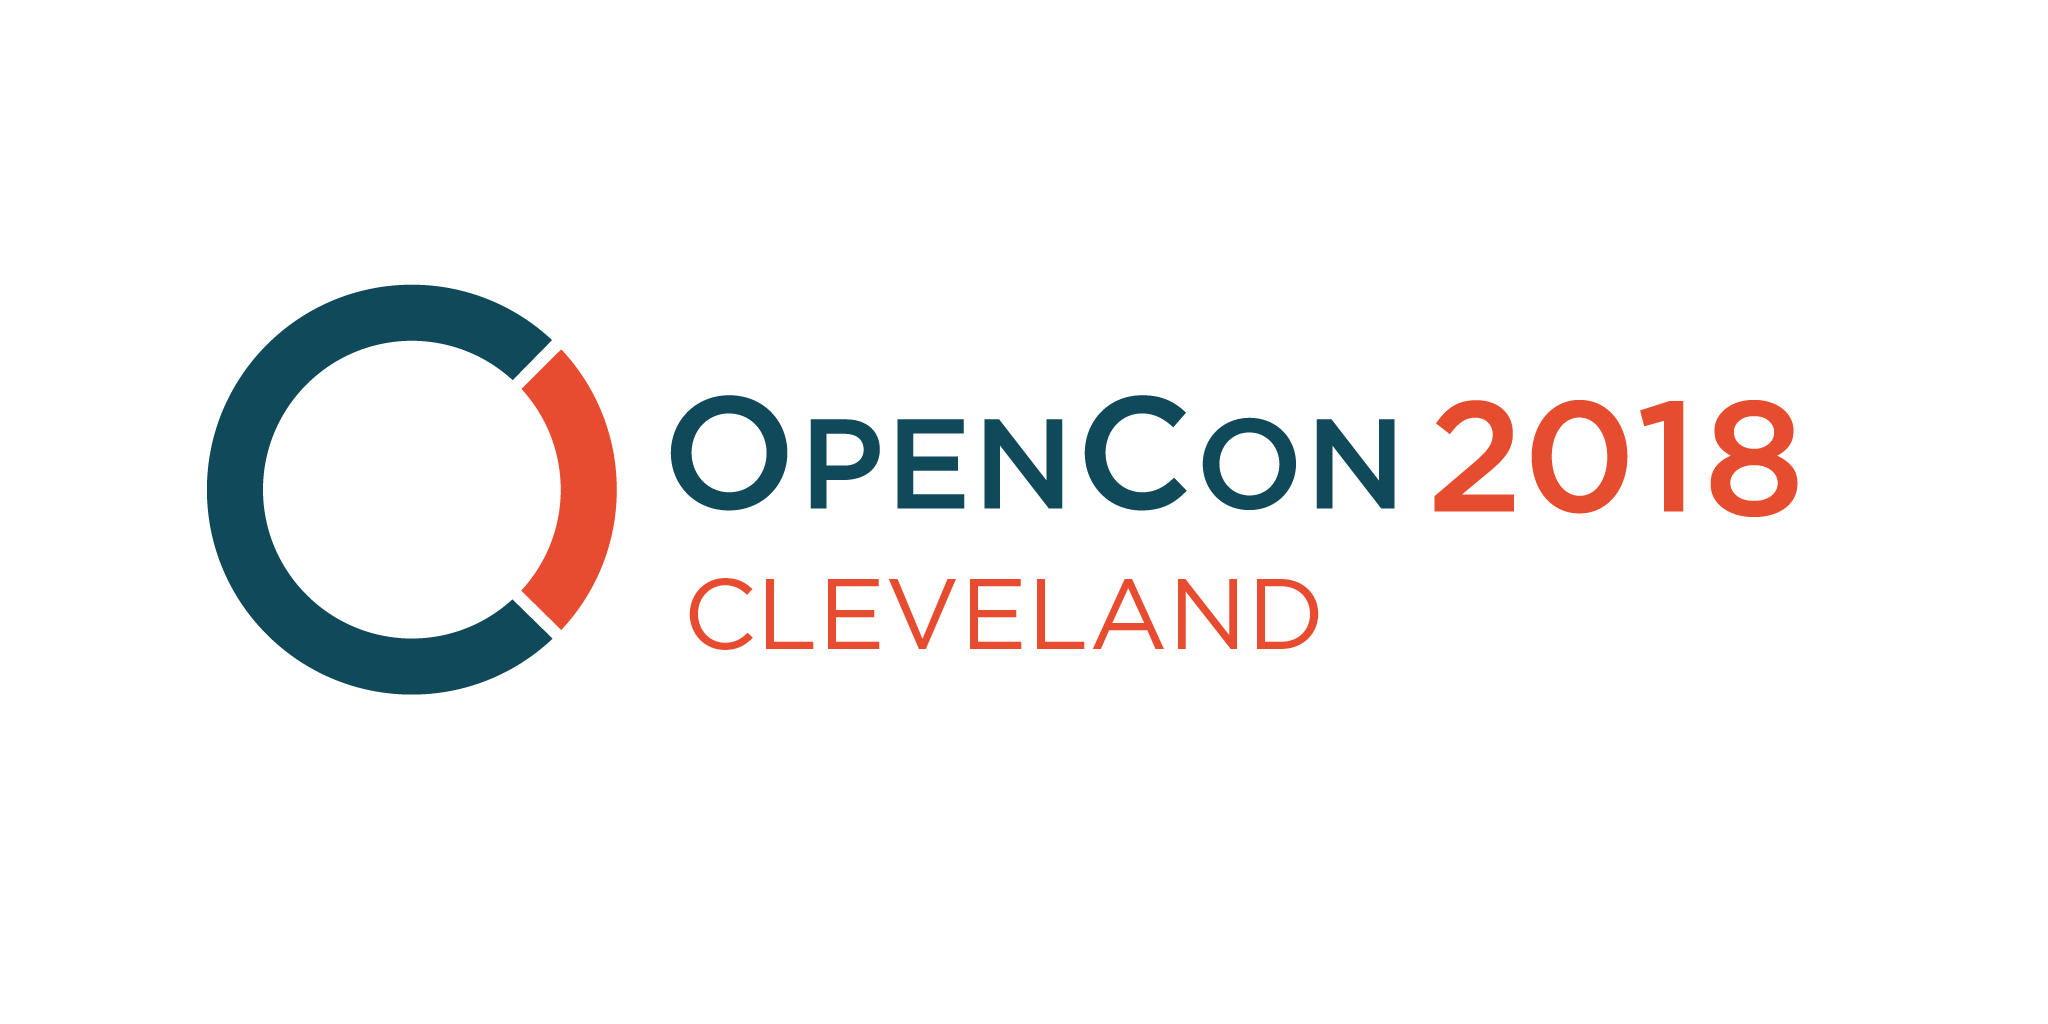 OpenCon 2018 Cleveland Kickoff Event: March 5